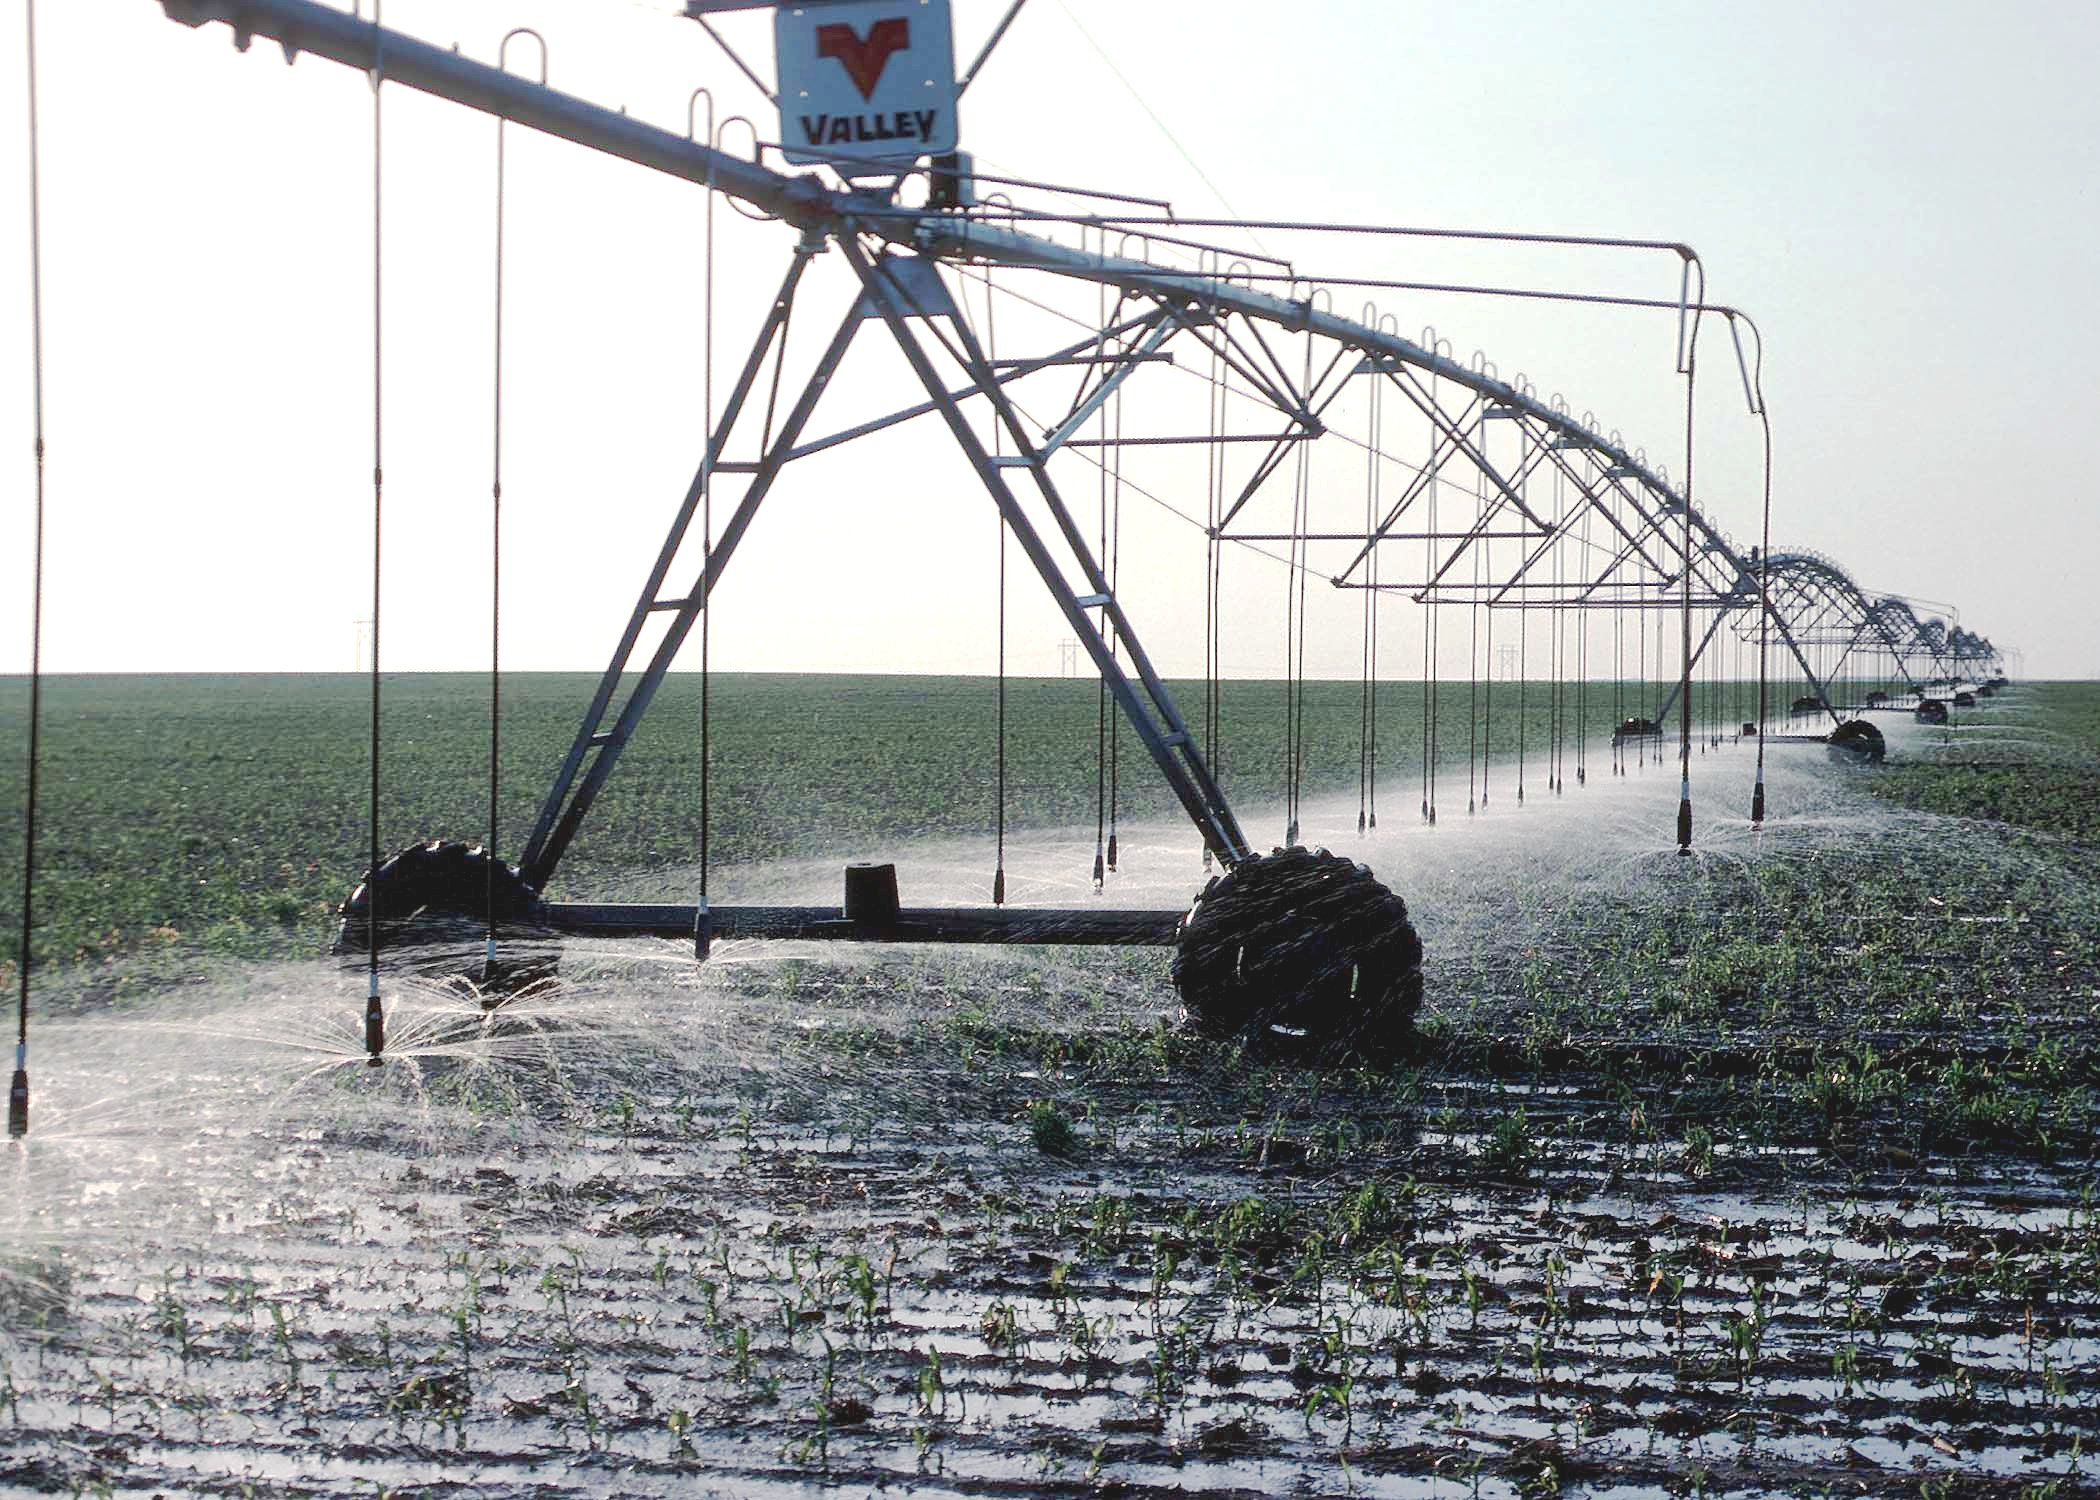 Irrigation system that travels on wheels, showing the emitters low to the ground to minimize evaporation